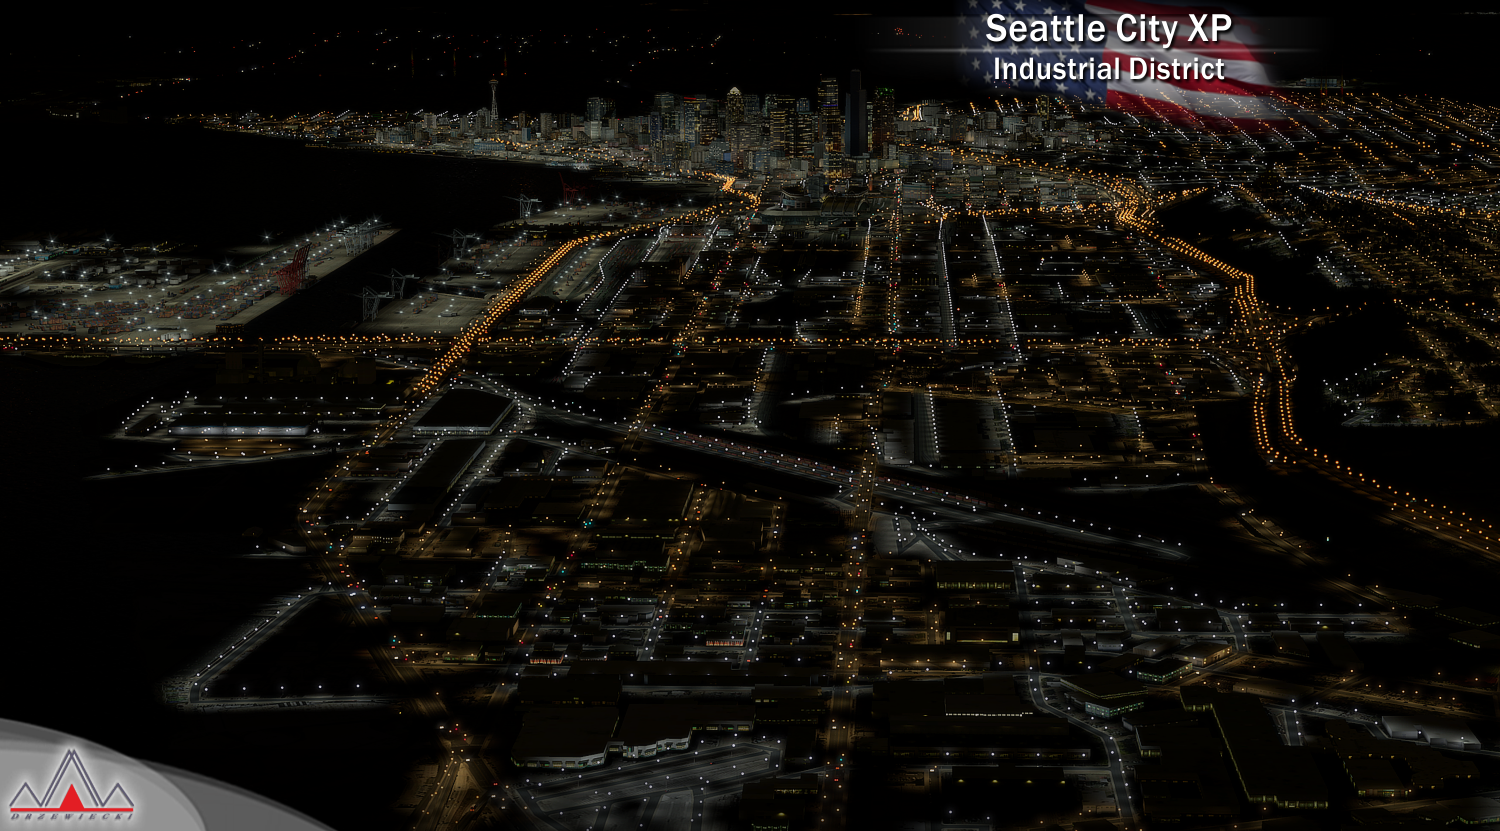 DRZEWIECKI DESIGN - SEATTLE CITY XP X-PLANE 11